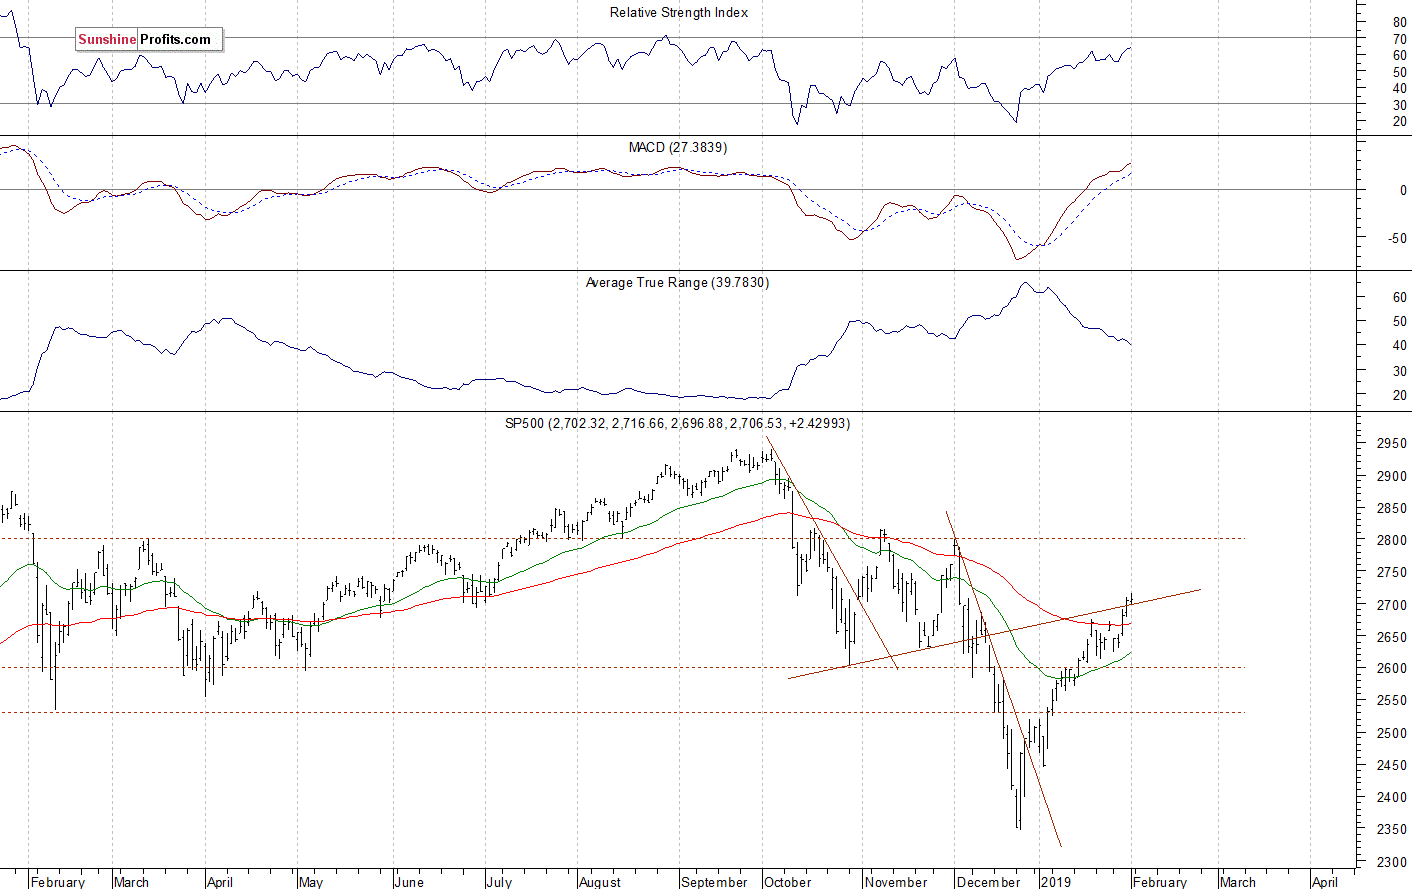 Daily S&P 500 index chart - SPX, Large Cap Index